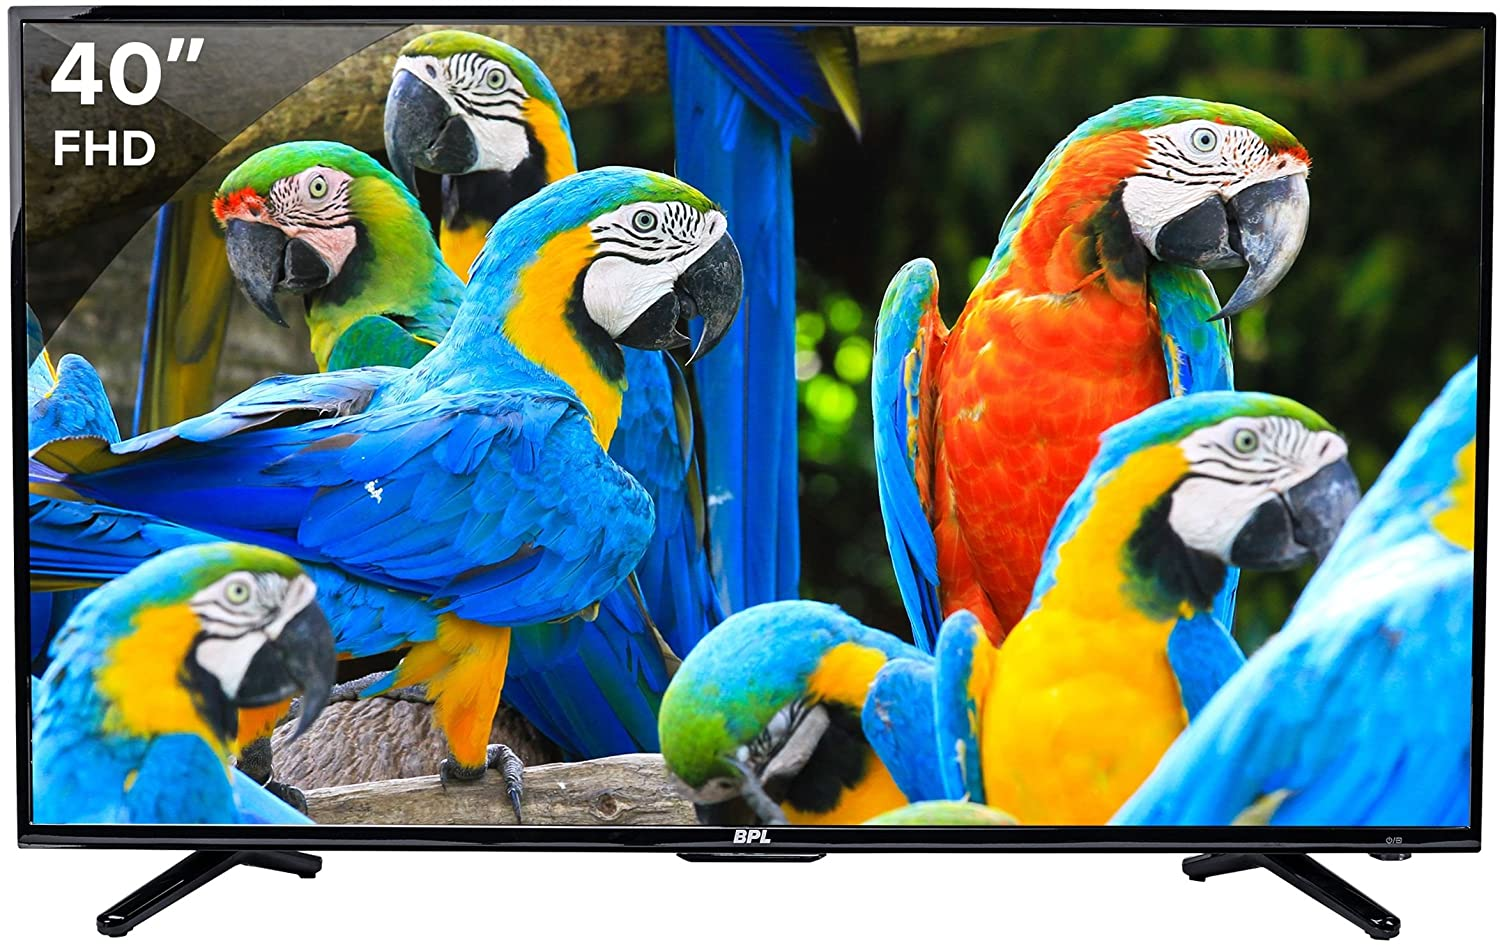 Best 40 inch LED TVs in India under 30,000 - rated and reviewed